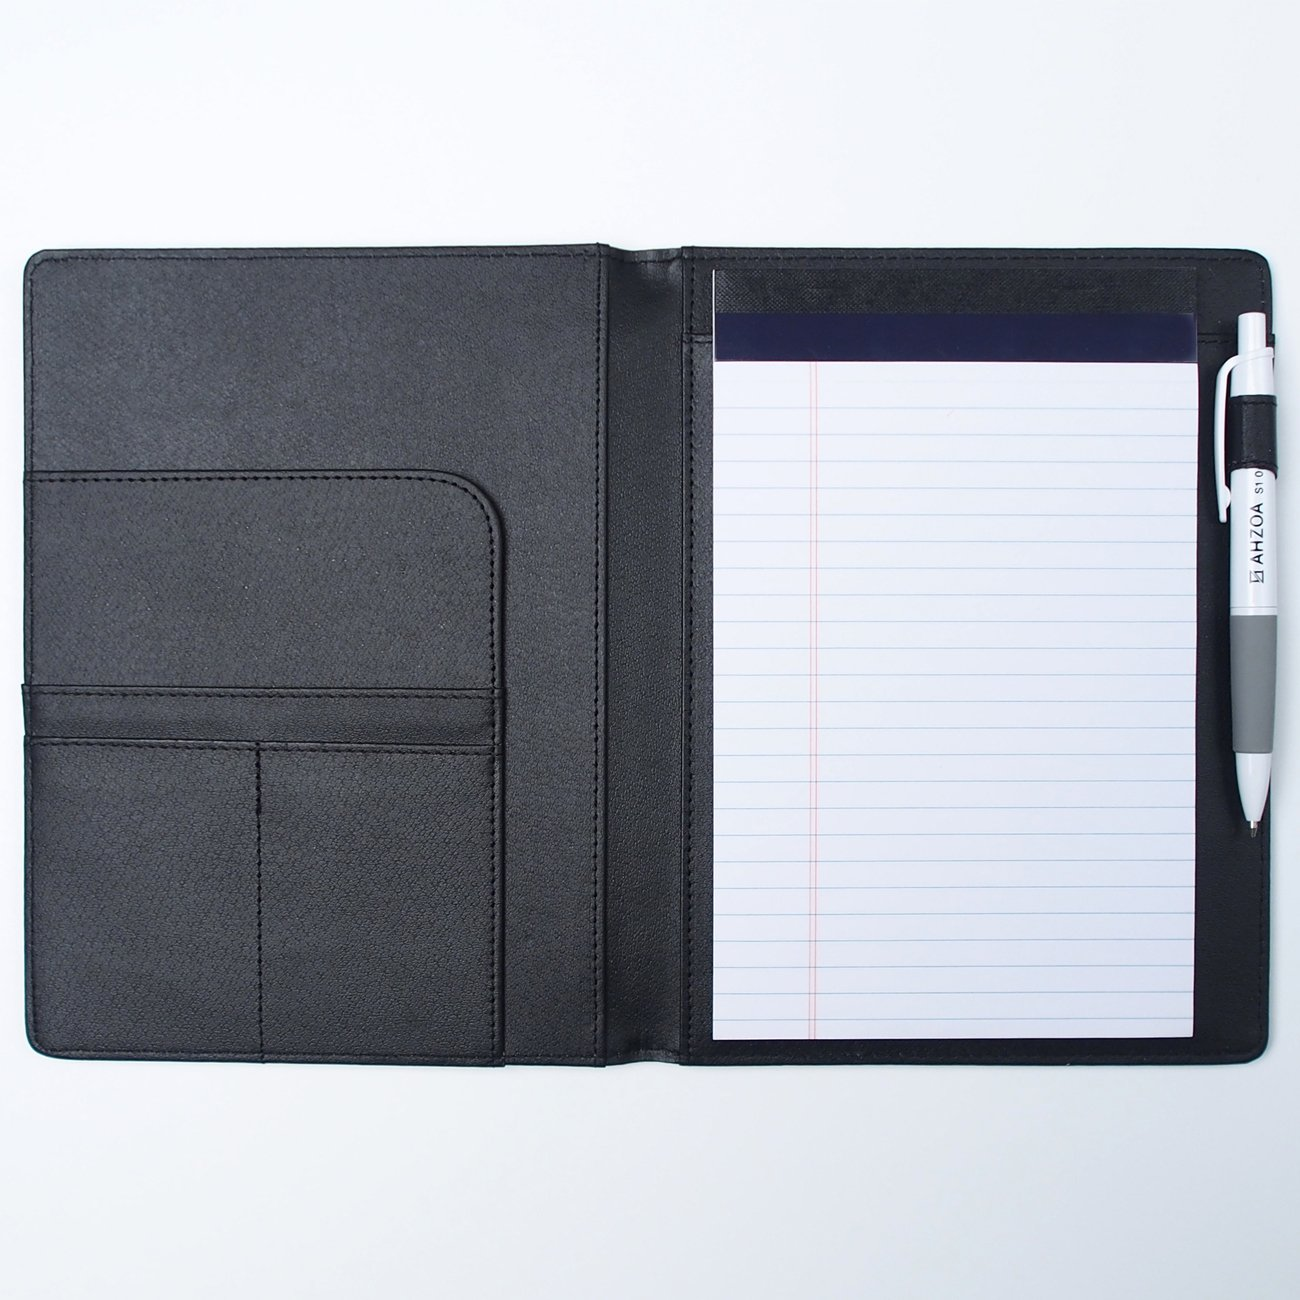 AHZOA 4 Pockets A5 Size Memo Padfolio S5 with Mechanical Pencil, Including 5 X 8 inch Legal Writing Pad, Synthetic Leather Handmade 6.61 X 8.66 inch Notepad Clipboard Holder (Black)